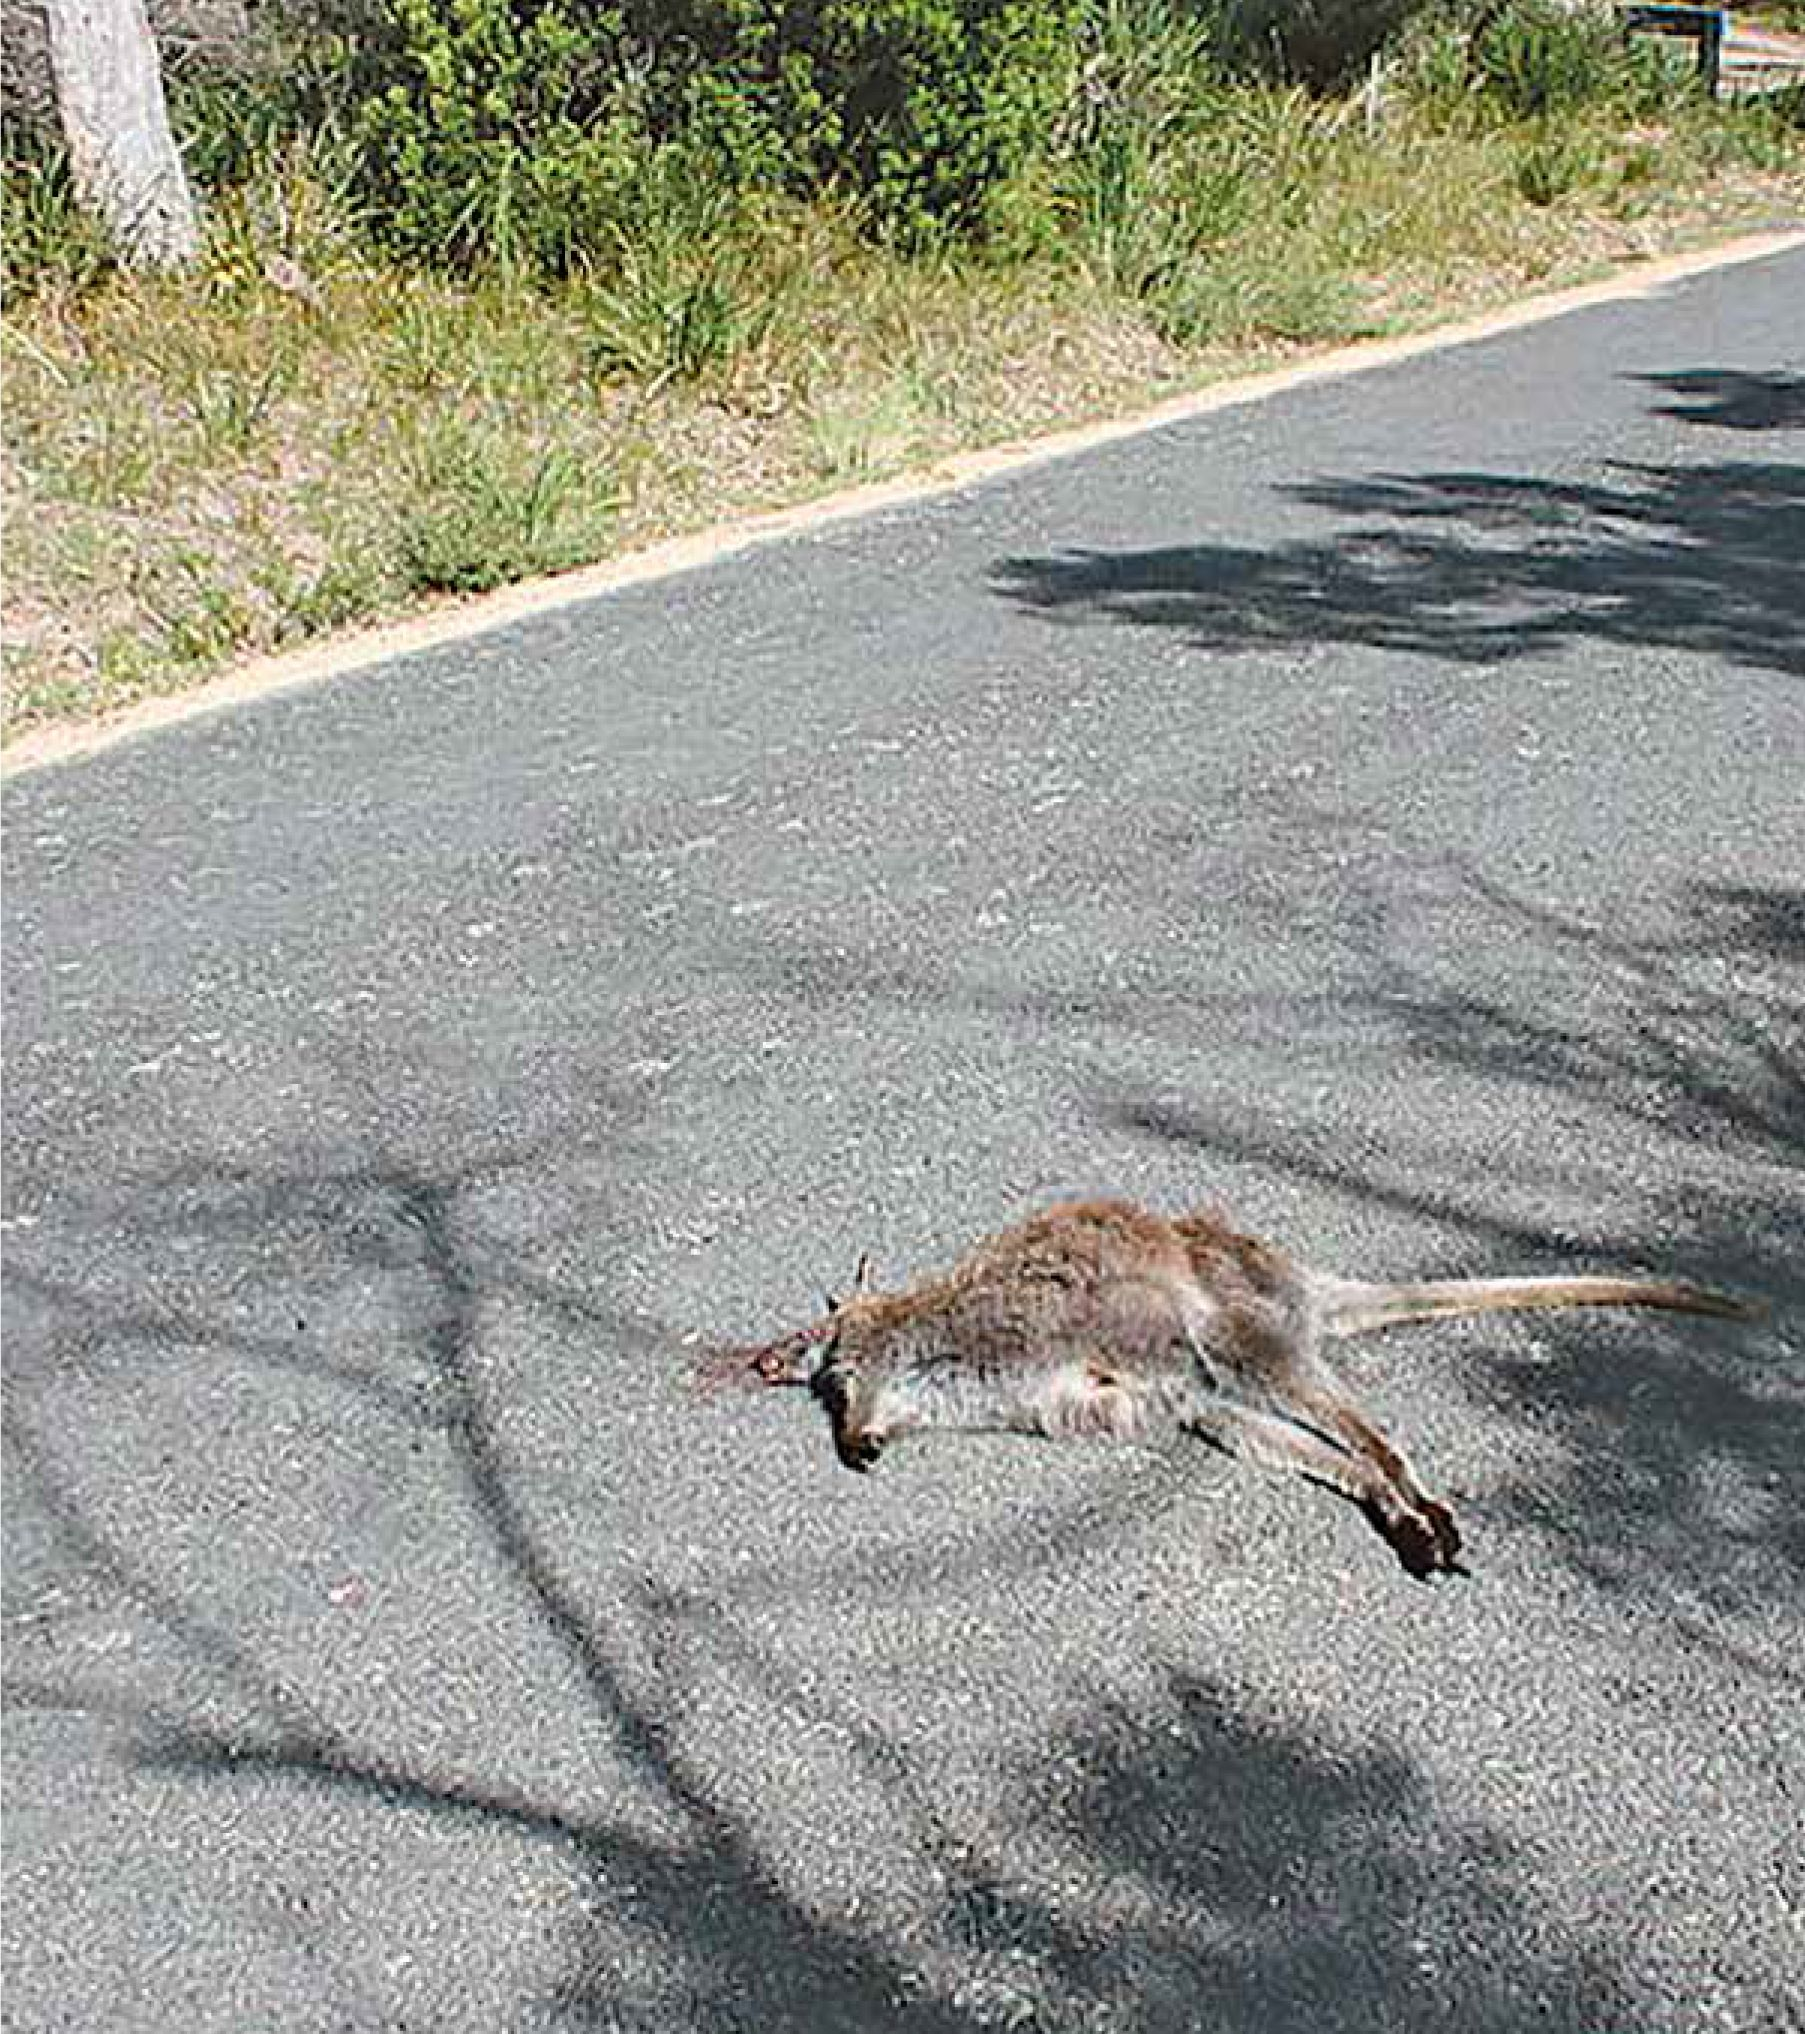 Roadkill, a common sight on Tasmanian roads.   Photo | Diego Delso